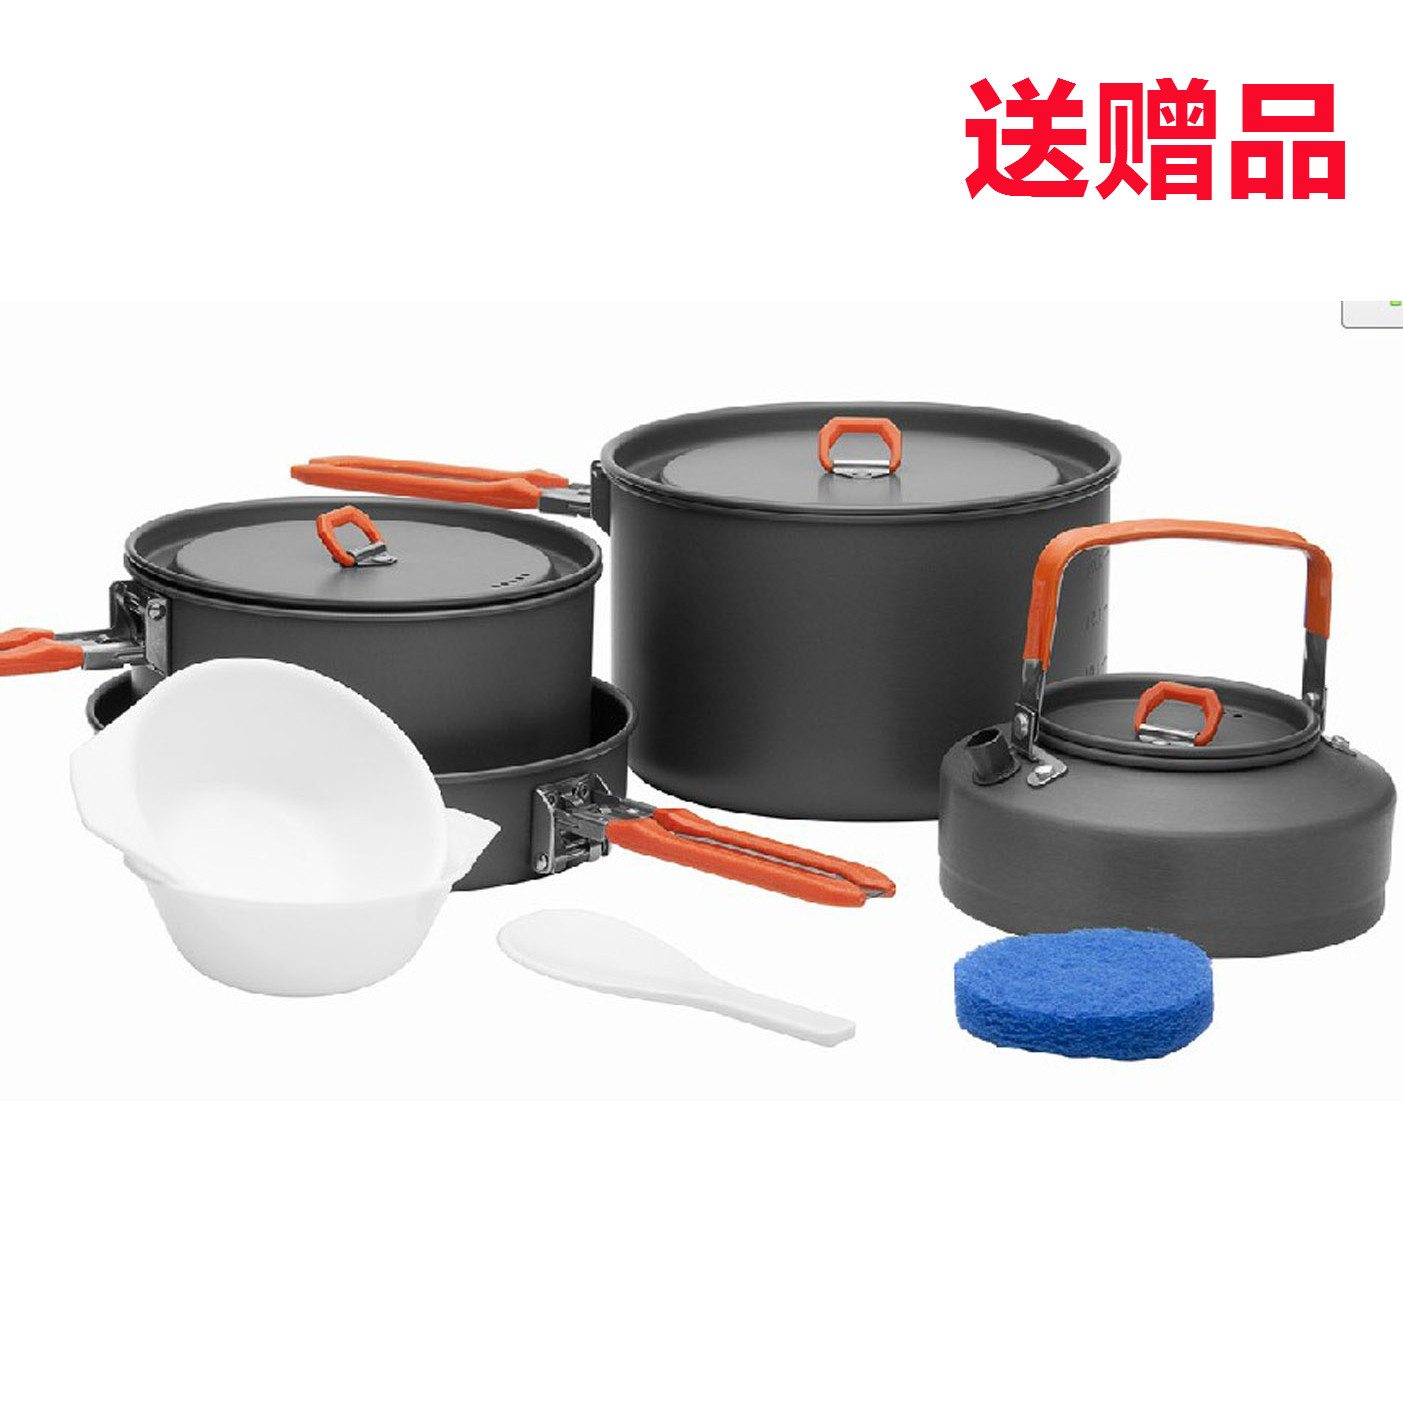 Fire maple outdoor feast full range of 1-234 ~ 5 people camping picnic cookware cookware portable kettle suit